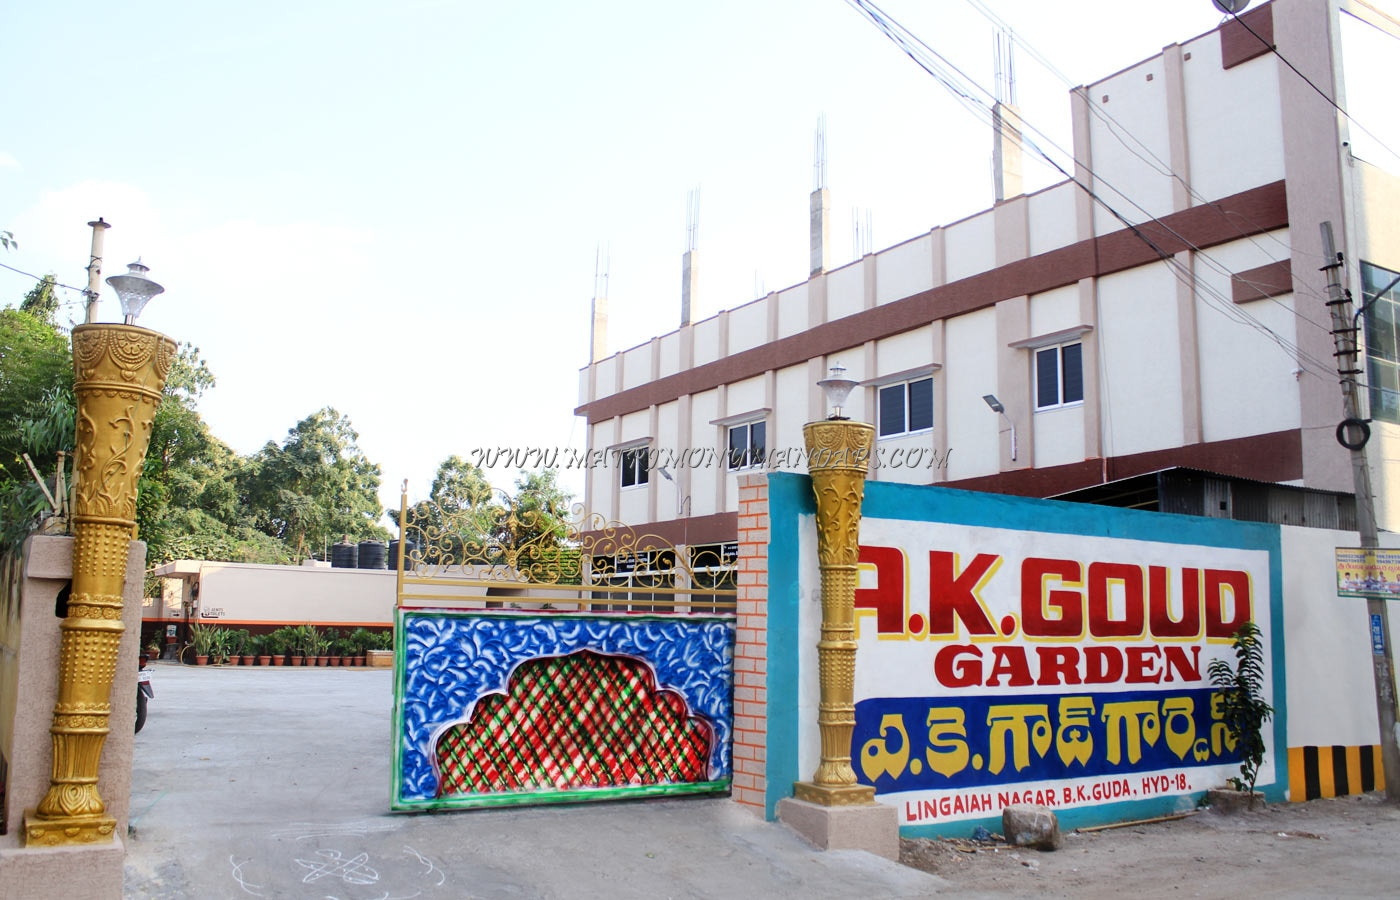 Find the availability of the AK Goud Function Hall (A/C) in Ameerpet, Hyderabad and avail special offers